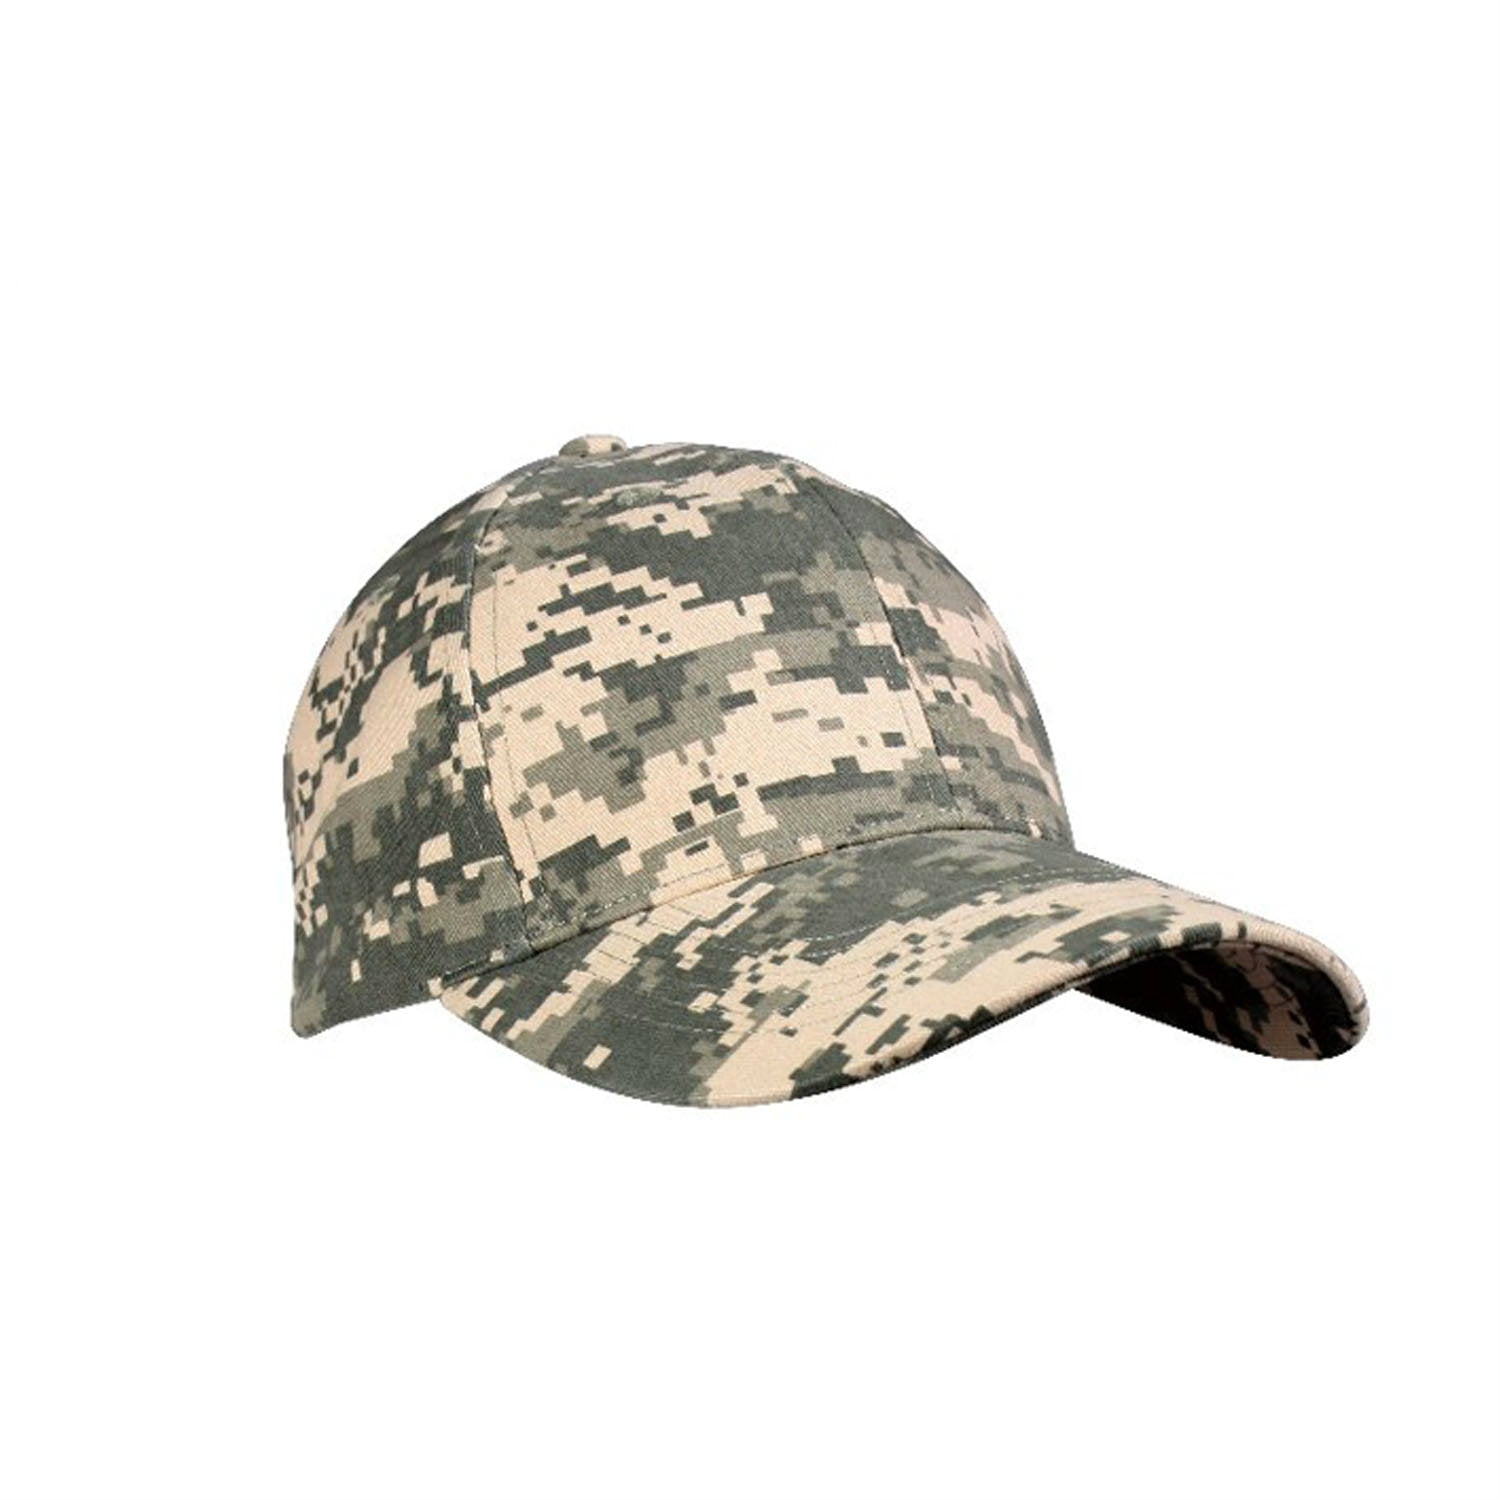 ACU Digital Camouflage Hat